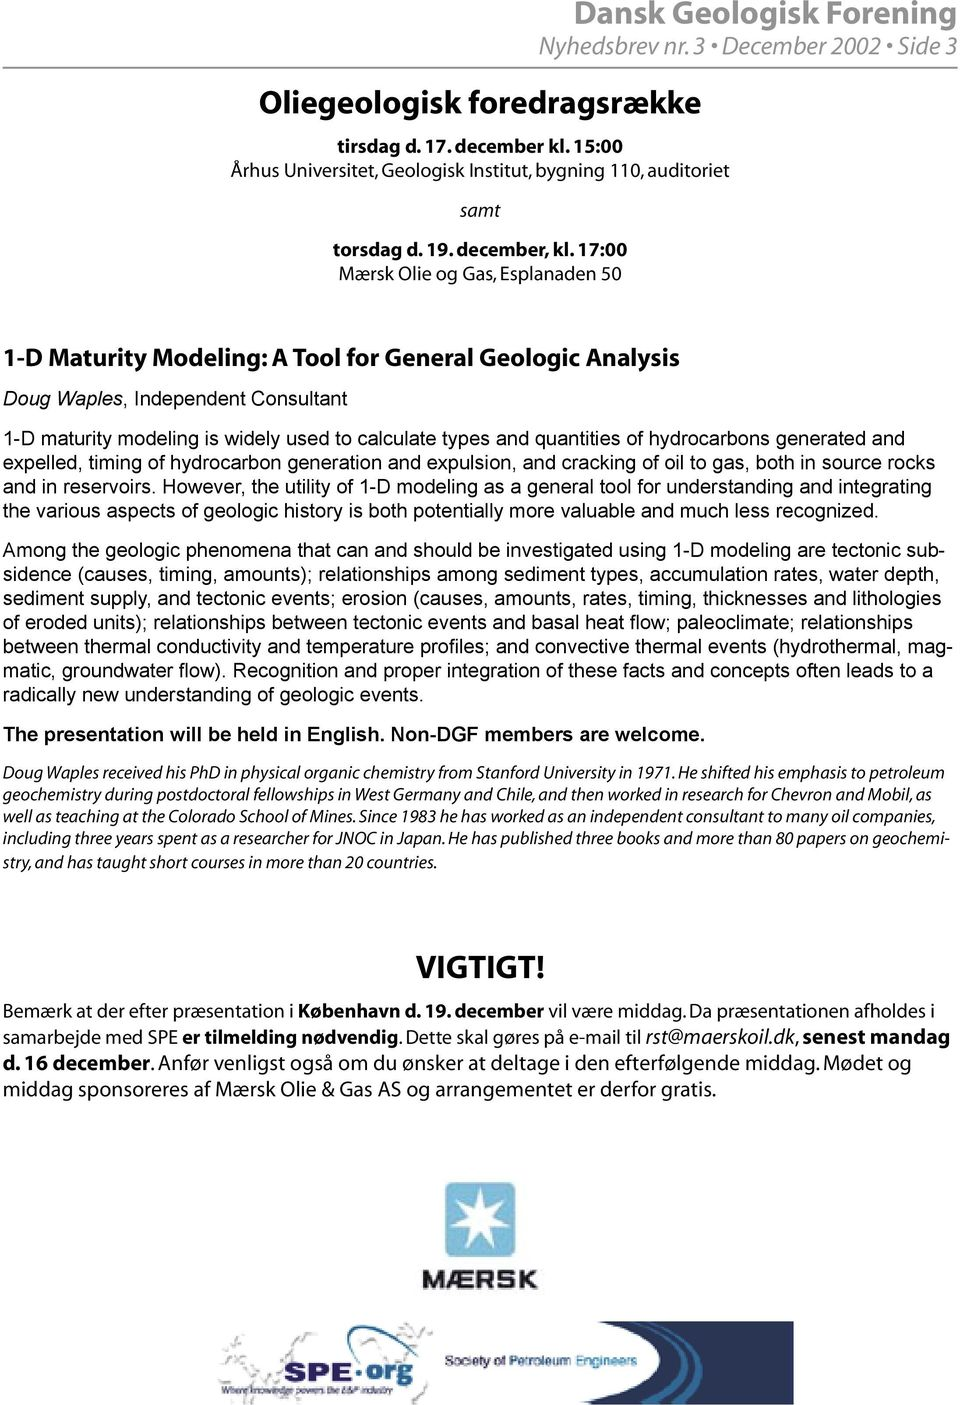 3 December 2002 Side 3 1-D Maturity Modeling: A Tool for General Geologic Analysis Doug Waples, Independent Consultant 1-D maturity modeling is widely used to calculate types and quantities of